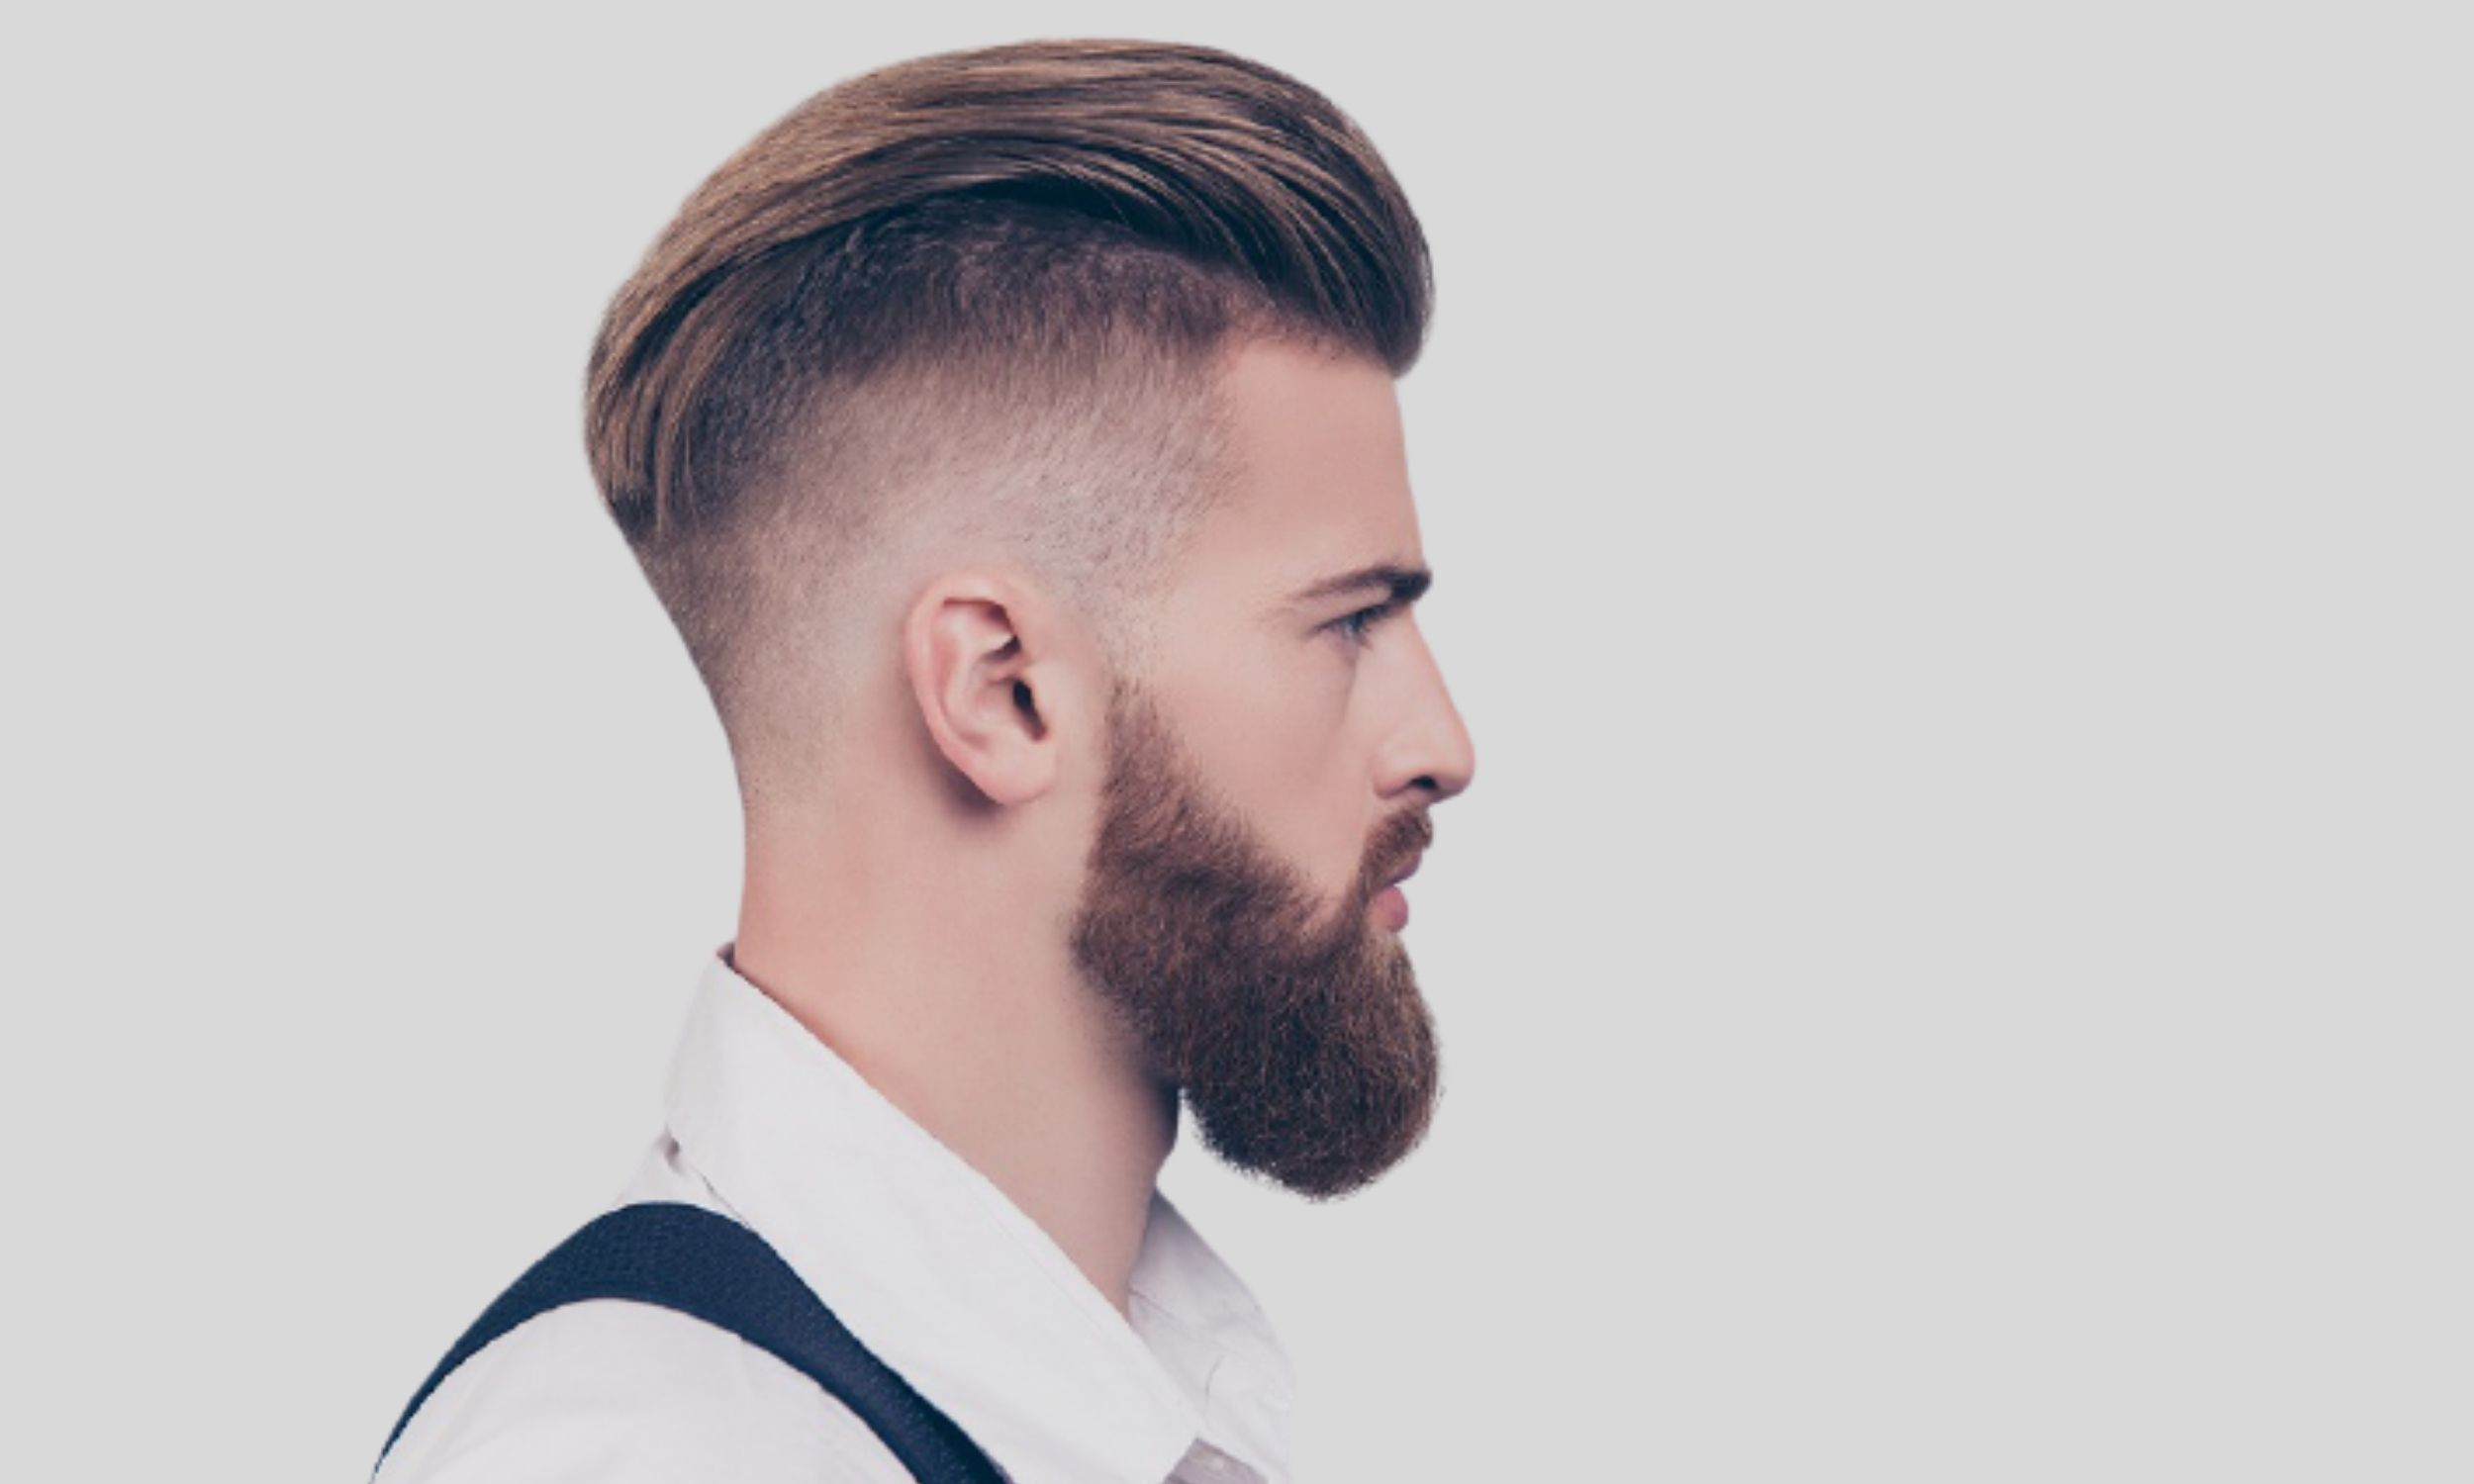 Comb over hair style